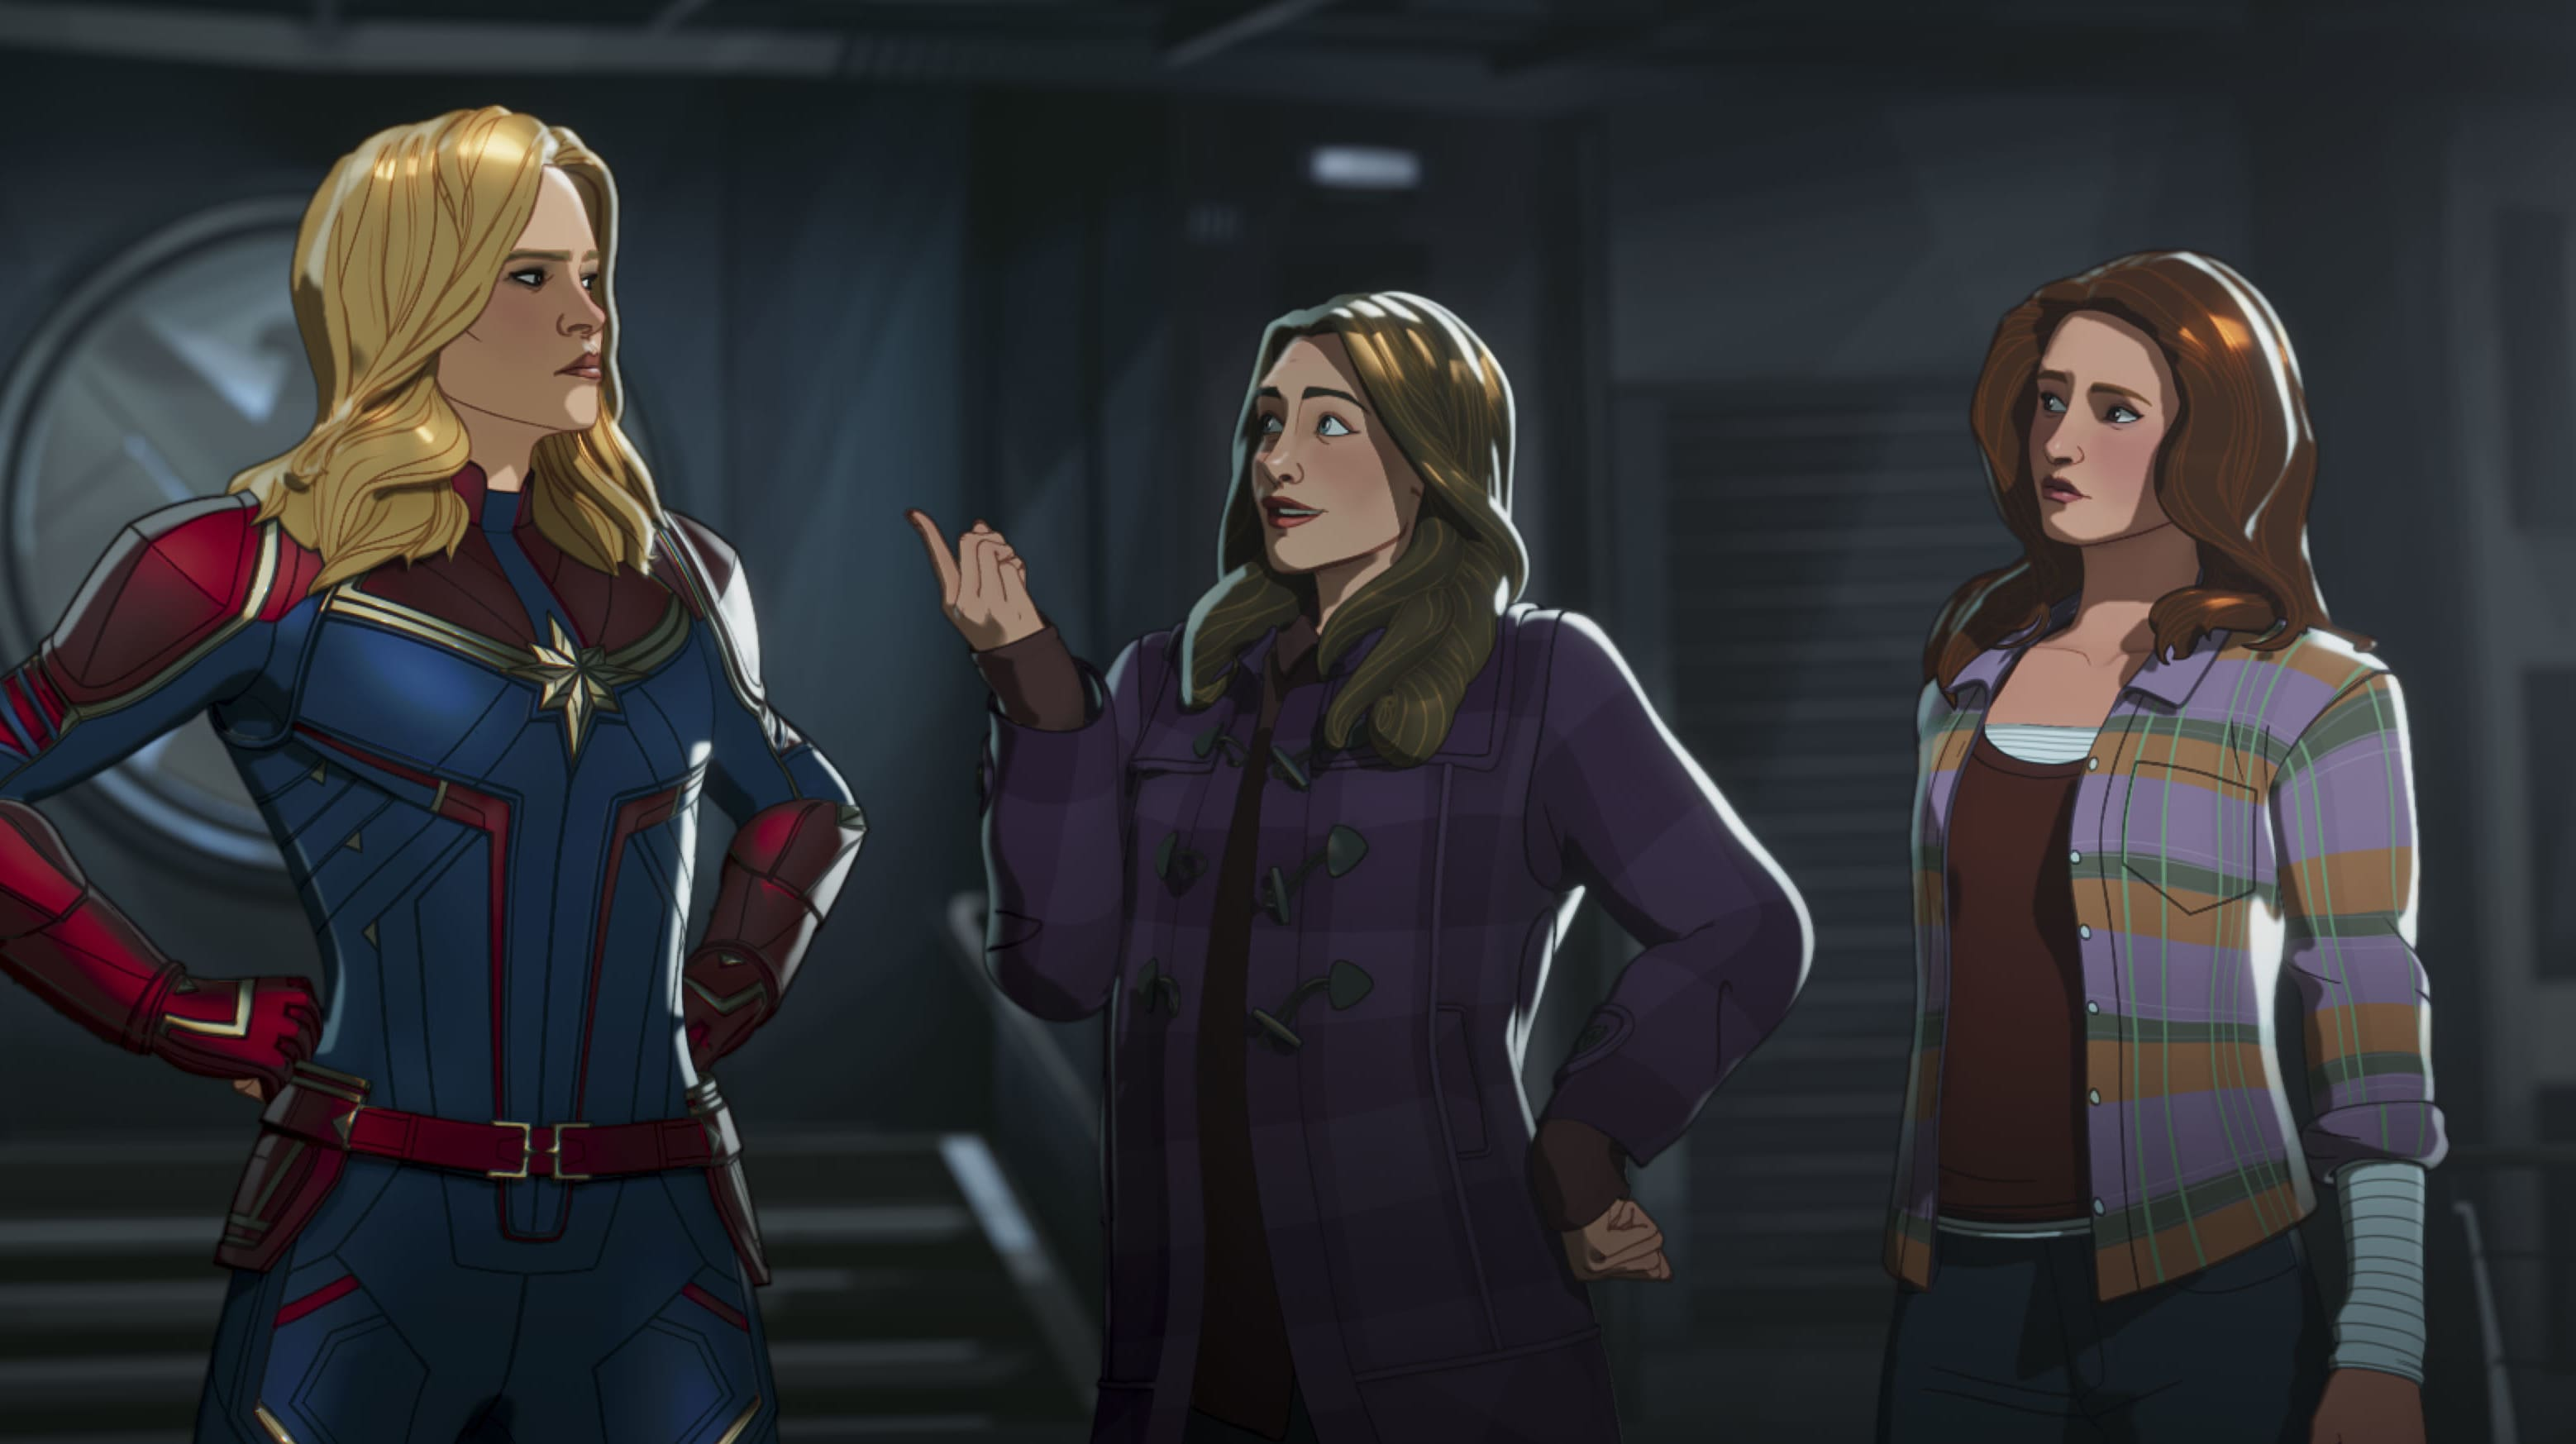 Captain Marvel, Darcy, and Jane Foster in Marvel Studios' WHAT IF…? exclusively on Disney+. ©Marvel Studios 2021. All Rights Reserved.